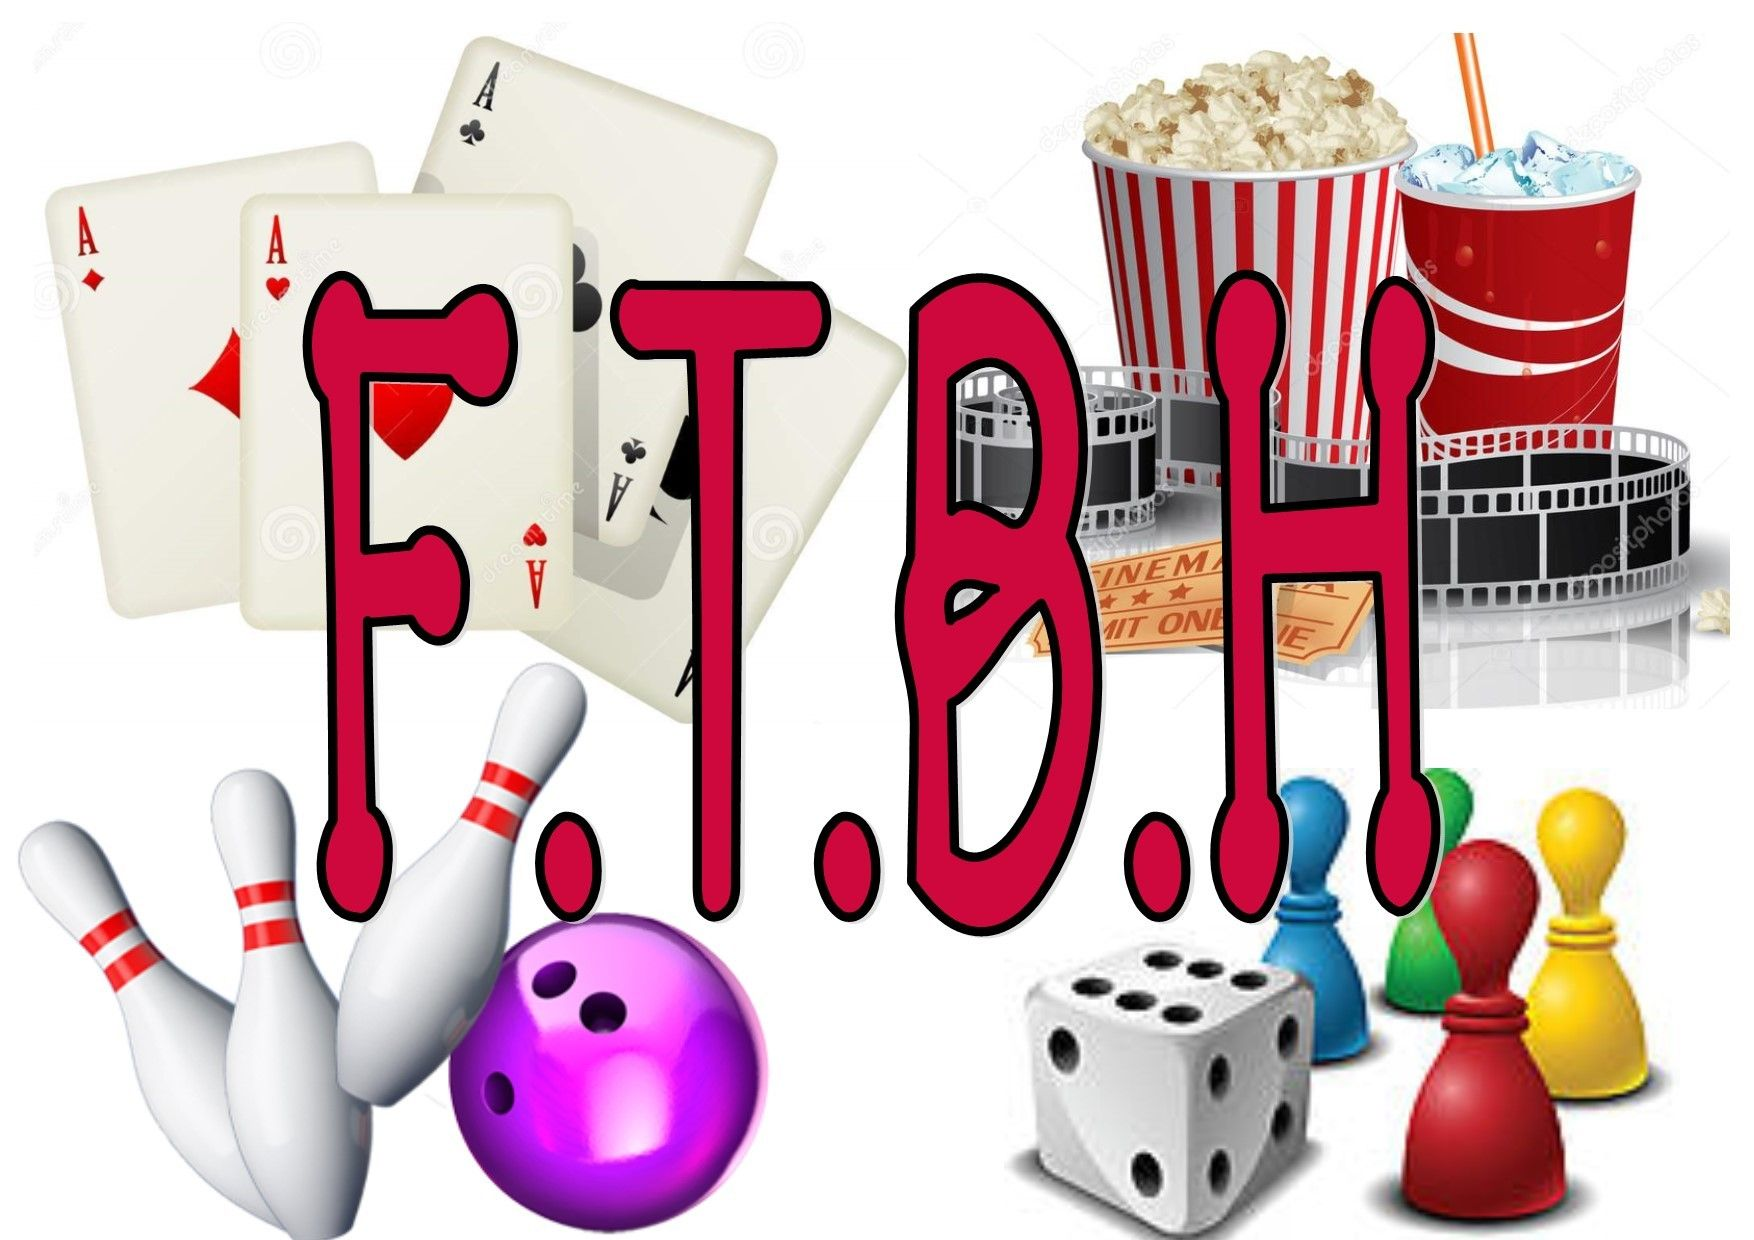 F.T.B.H (Fun To Be Had) Social Group